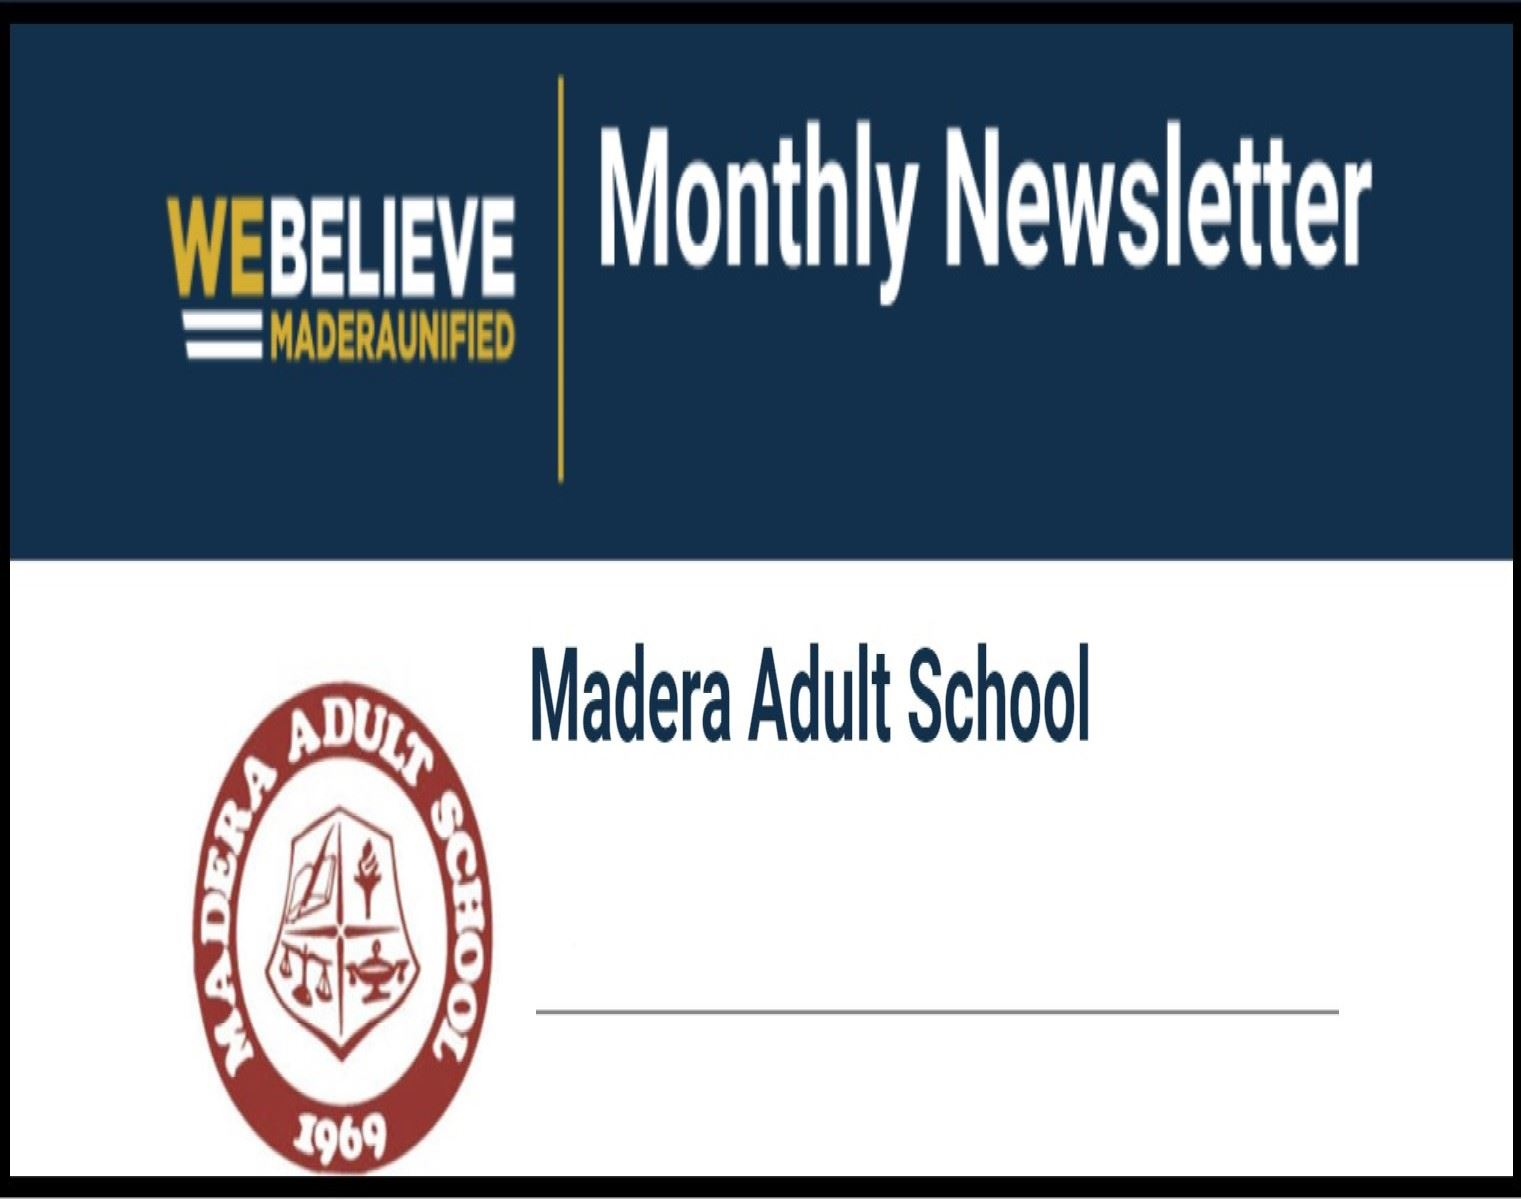 "<h1><span style=""font-family: 'Times New Roman', serif; color: black; font-size: x-large;"">Madera Adult School Monthly Newsletter<H1>"